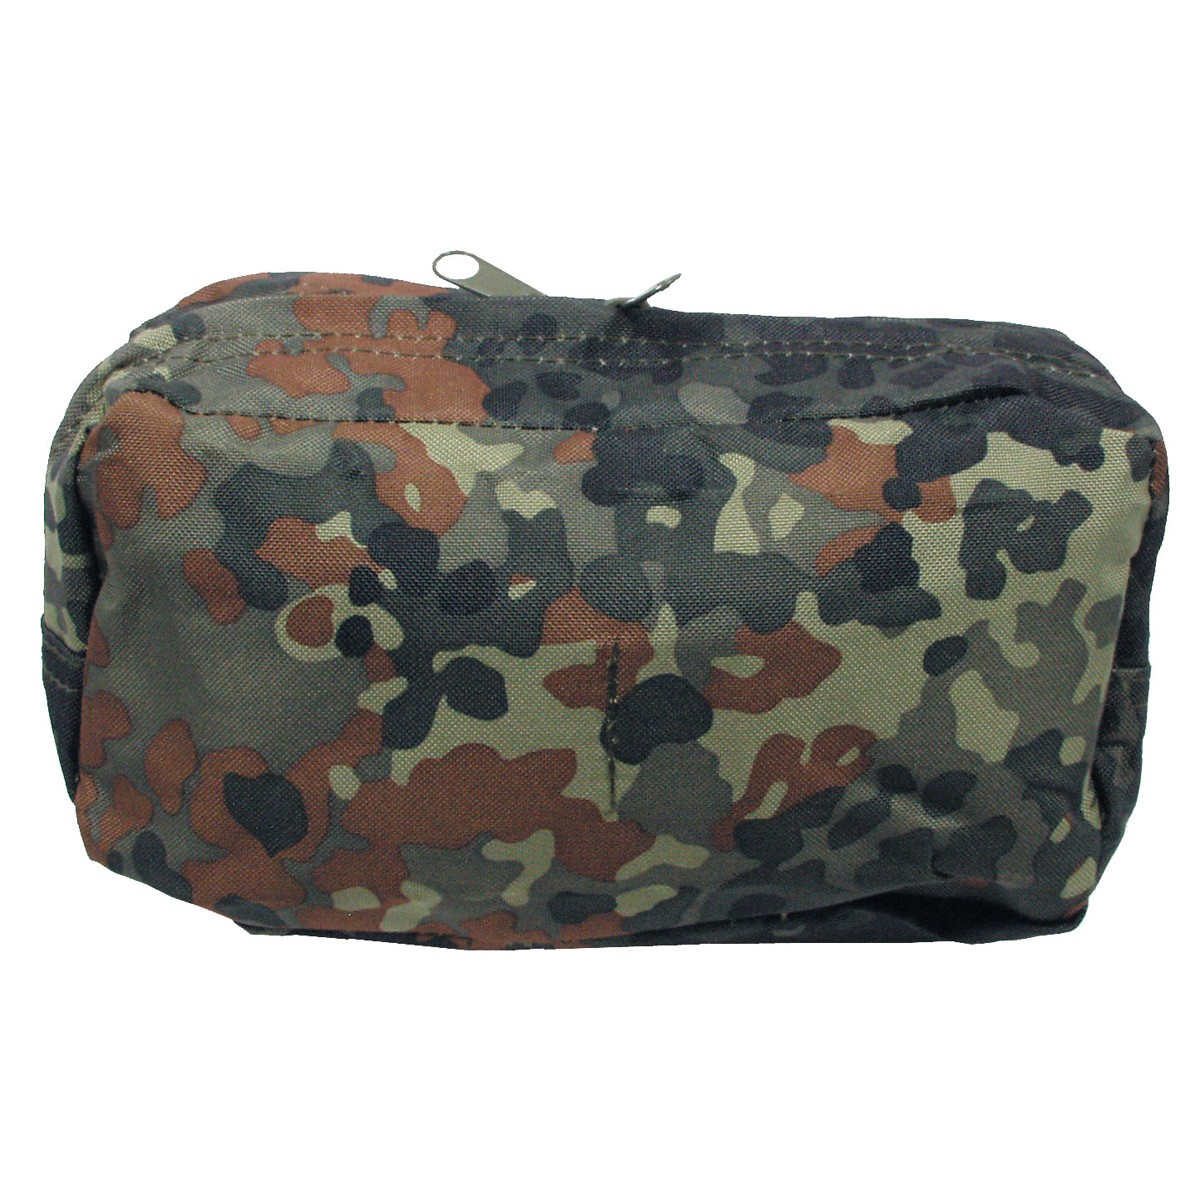 Tactical Utility Mollle Large Pouch - BW German Army Camo Flectarn